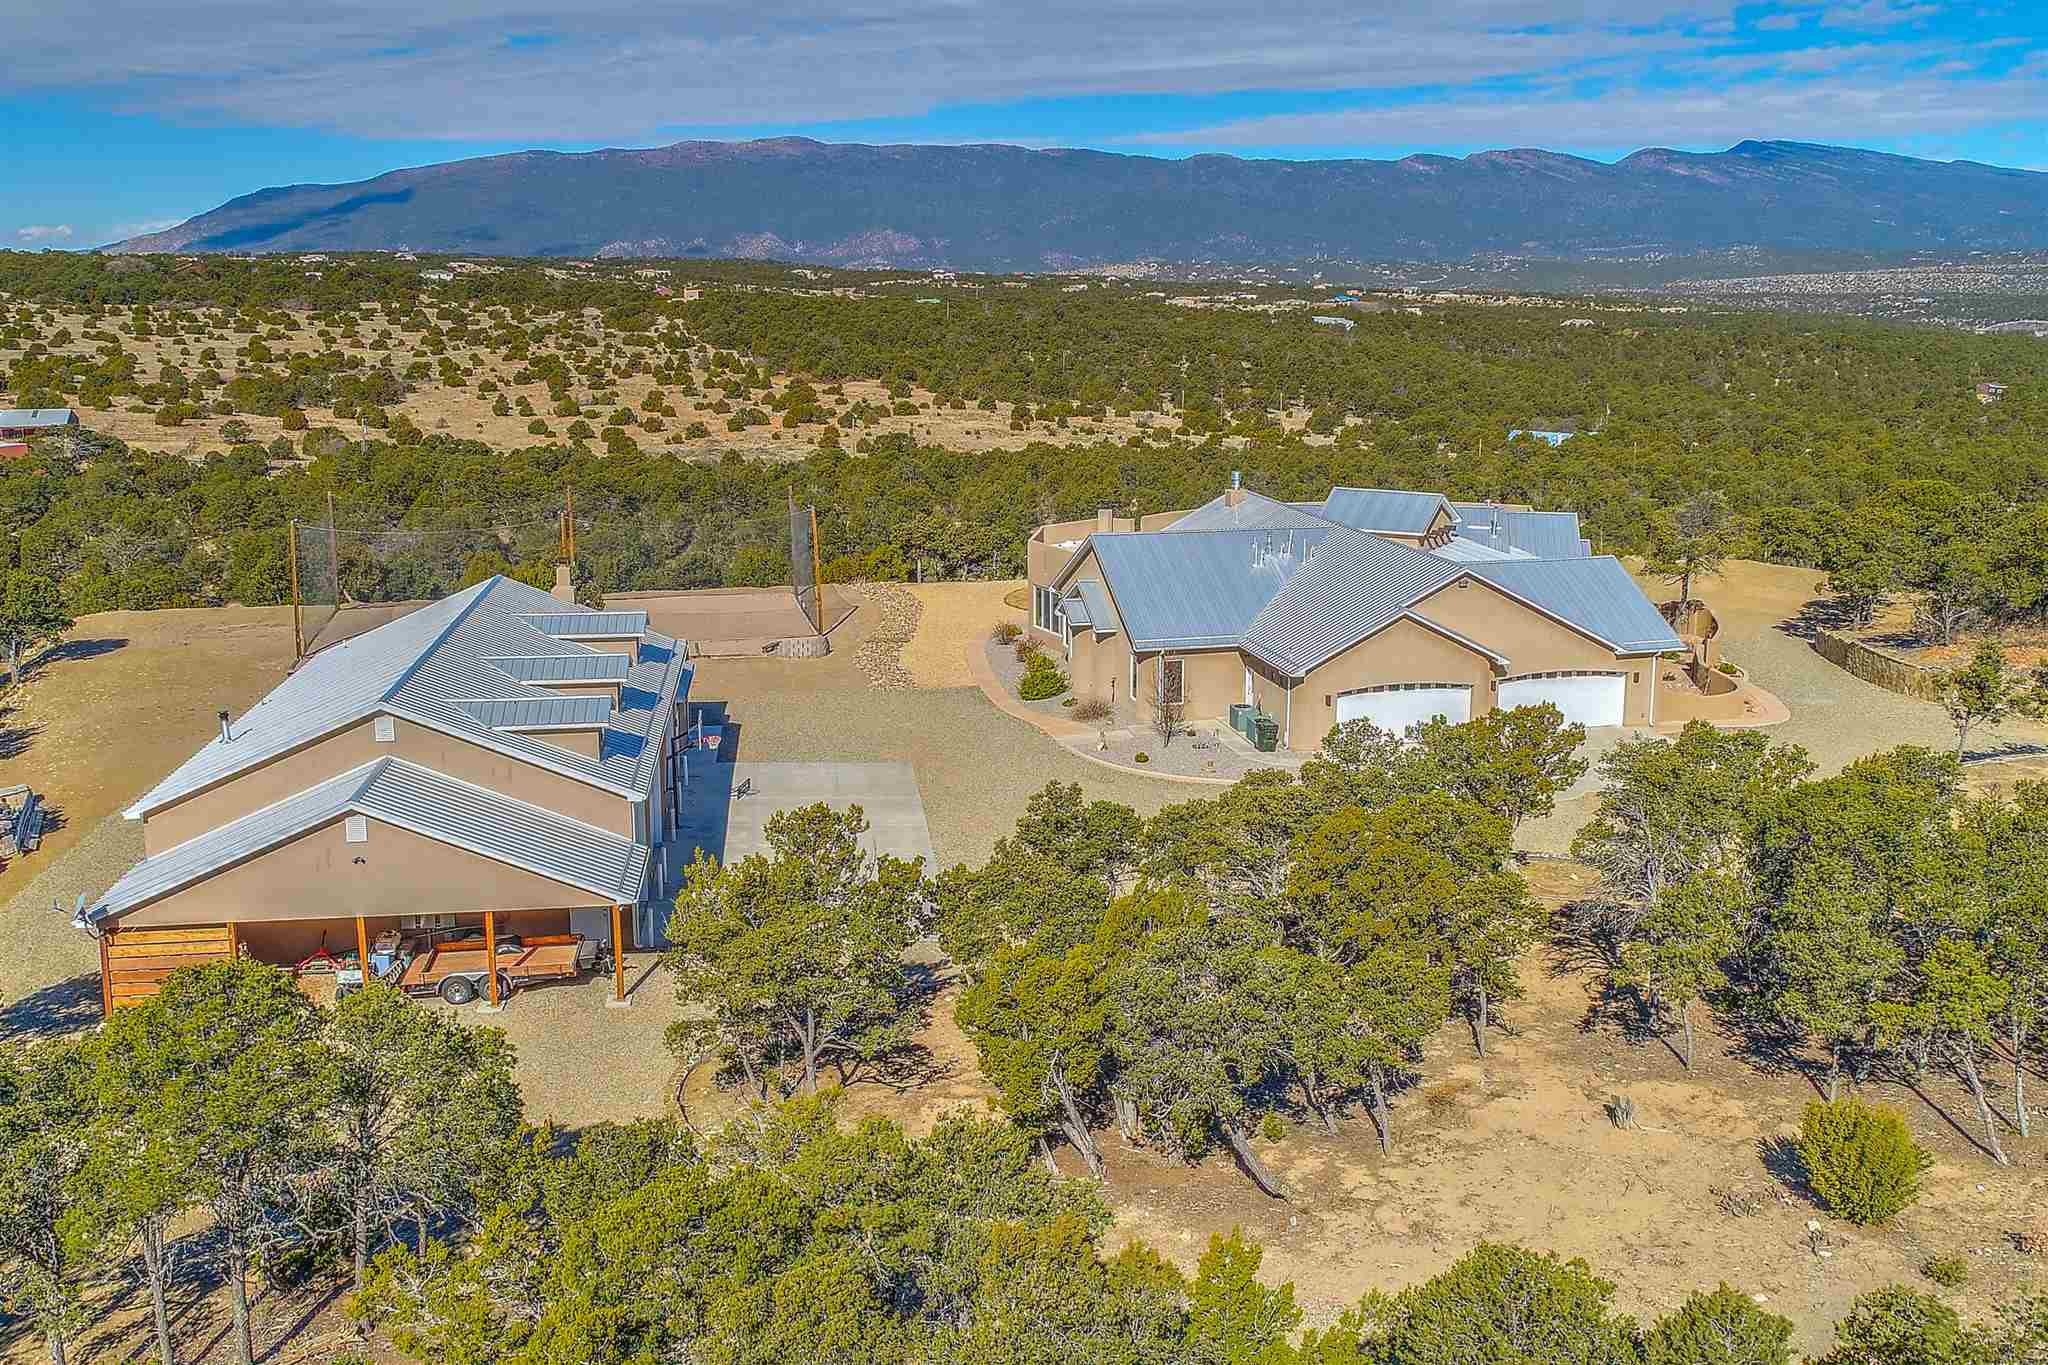 Spectacular views surround this exceptional custom home on 7 plus private acres just 25 minutes from ABQ international airport off of I-40. Hike, bike or ride your horse in the National forest. Main home with four bedrooms, three bathrooms, home office and wet-bar. Full Guest house and RV garage. Thermador appliances in a chef's kitchen with double ovens, 6-top gas stove, warming drawer and built-in refrigerator. Walk-in pantry and extensive cabinetry provide plenty of storage. Eat-in kitchen and breakfast bar as well as separate dining room for formal dinners. Bring the party outside to the extended patio, fire-pit, and volleyball court. Ambiance exudes throughout this high-end home including on-demand hot water, gas fireplaces, radiant floor heating and refrigerated air conditioning. Finished garage attached to main home with extended storage area. The guest house is fully equipped with kitchen, living area and fireplace. Attached workshop/garage is perfect for the car collector or hobbyist. A separate RV garage is attached to the workshop. Beautiful walled entry greets you at the electronic gated entry. Fully fenced.Year-round outdoor activities include hiking the National forest, netted outdoor sand volleyball, horse-shoes, greenhouse and endless spectacular views of sunsets.